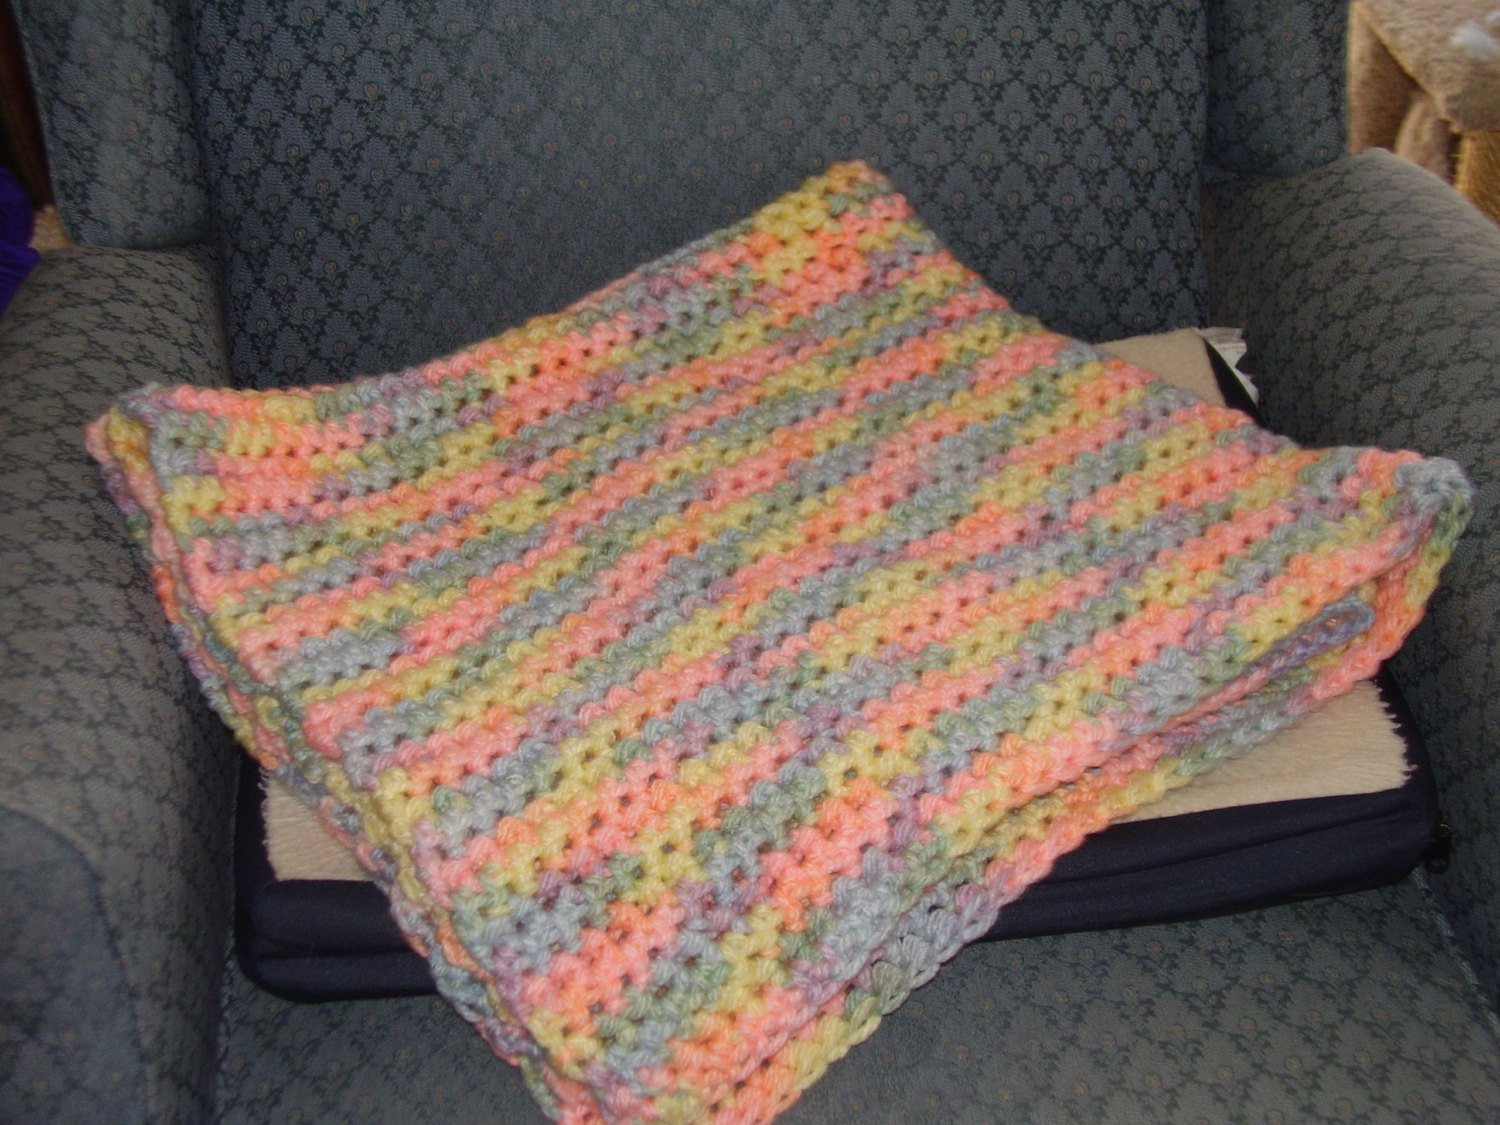 Crochet Baby Blanket for Sale Unique Crochet Pastel Baby Blanket On Sale Of Attractive 48 Photos Crochet Baby Blanket for Sale